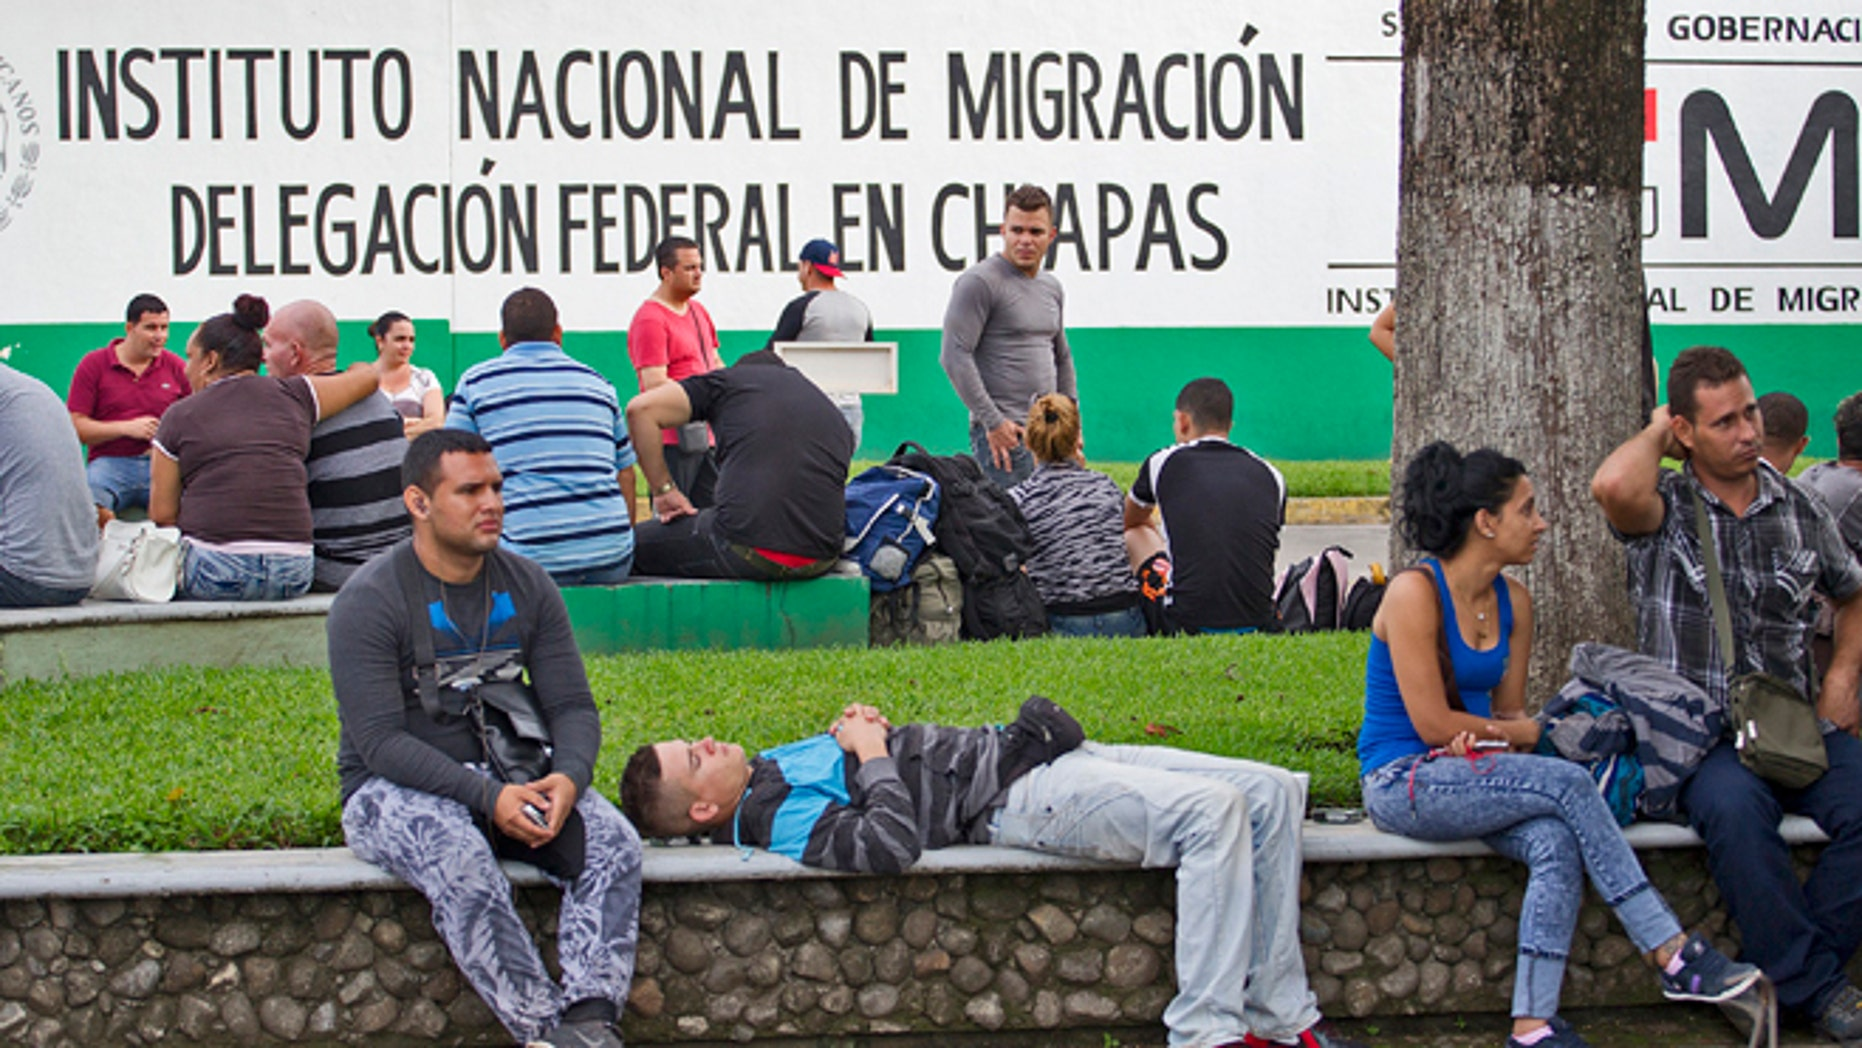 Cuban migrants wait to be processed outside the Mexican National Institute of Migration shortly after they had crossed the Rio Suchate, the body of water that separates Guatemala from Mexico, that is being used by hundreds of Cubans headed to the United States. (Patrick Farrell/Miami Herald/TNS via Getty Images)